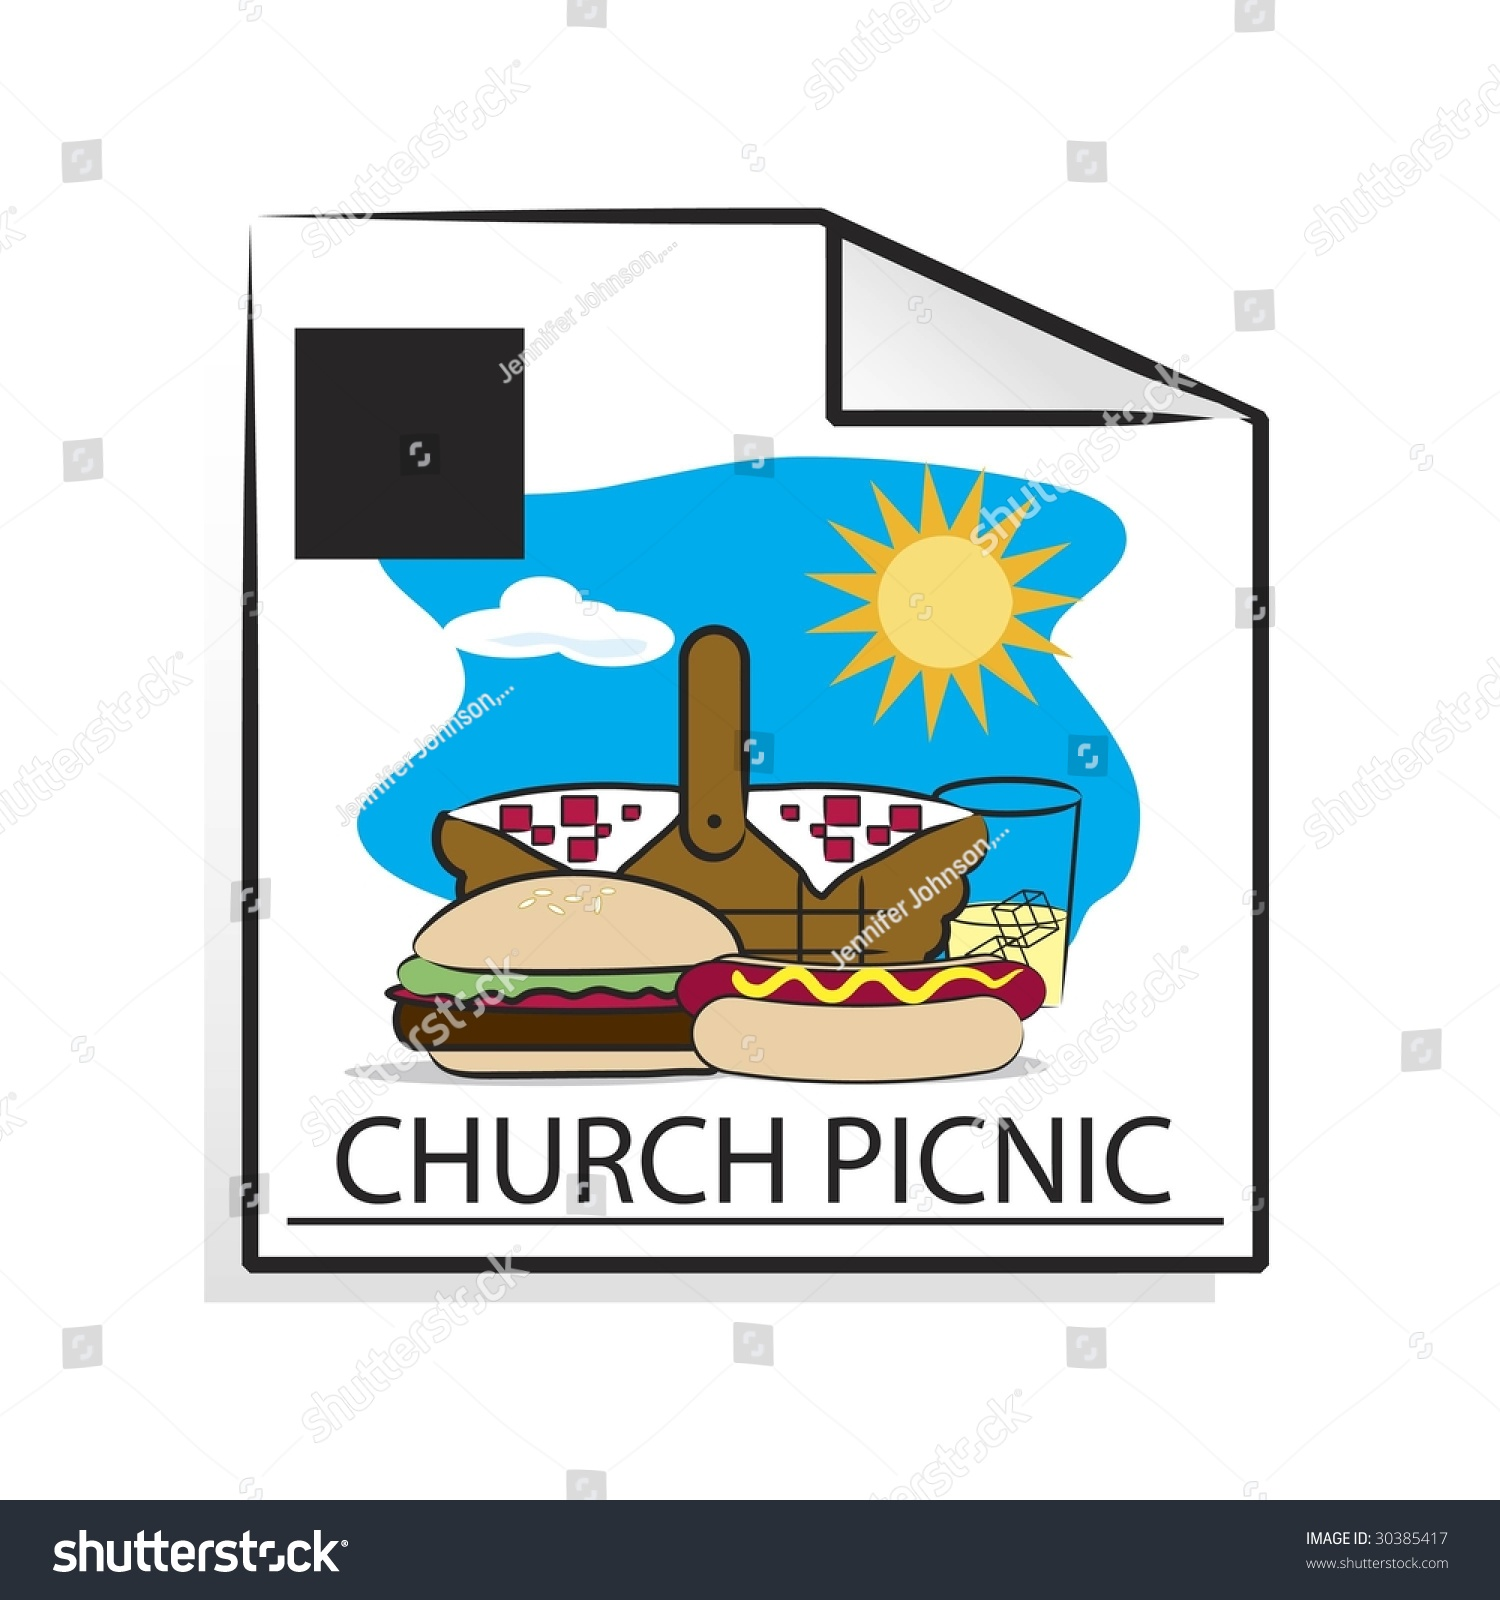 Calendar Page Clip Art : Church picnic calendar page stock illustration